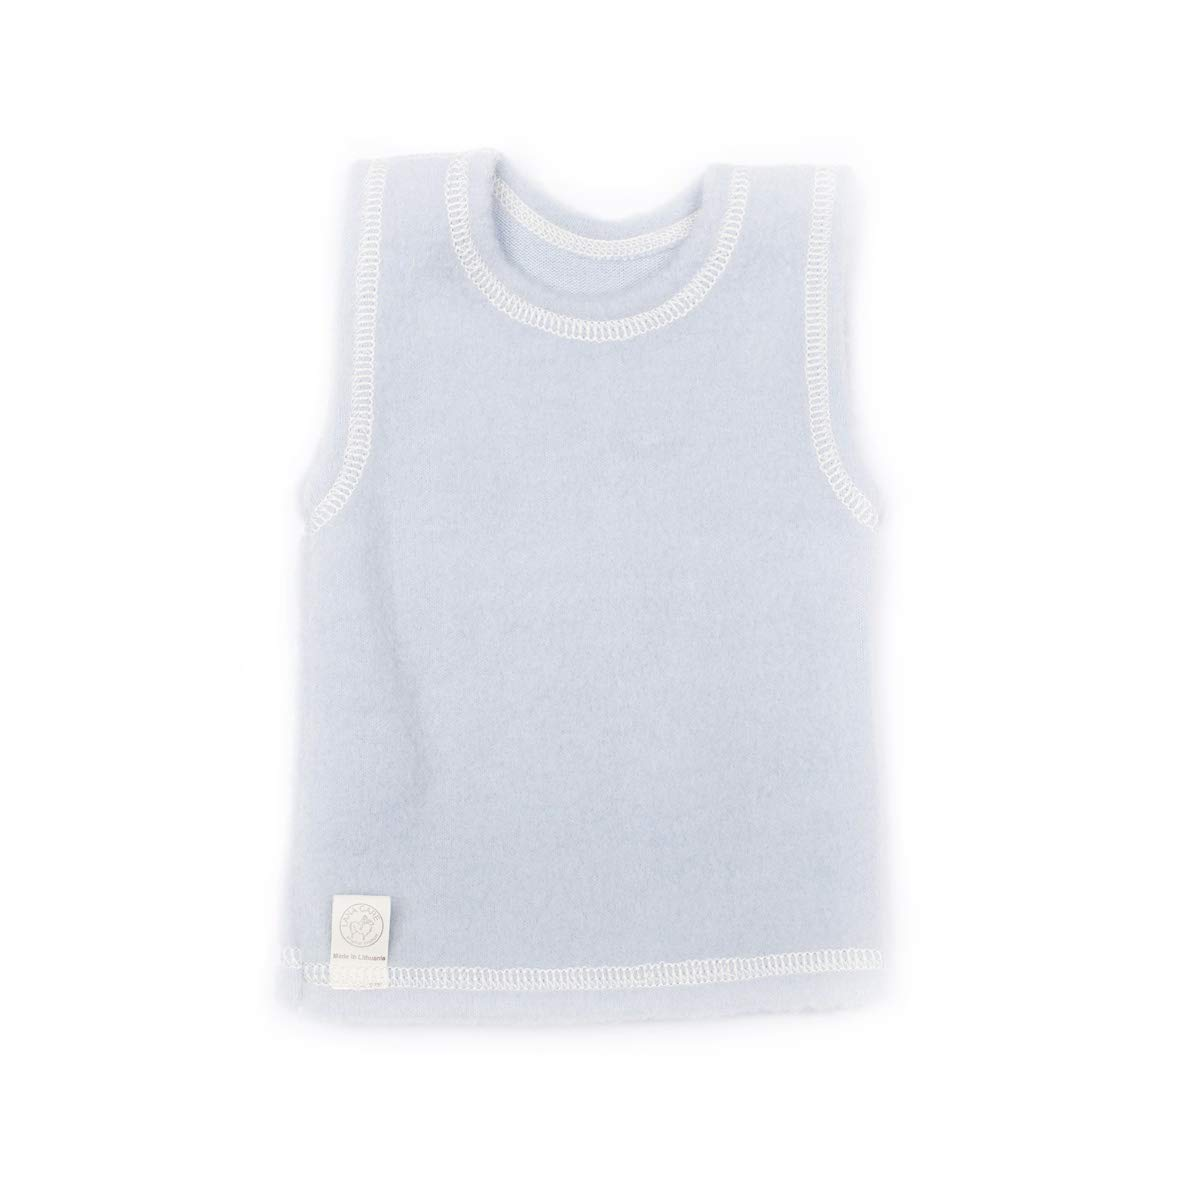 LANACare Baby/Toddler Vest in Organic Merino Wool, Size 62 (3-6 mo), Light Blue by LANA CARE original product